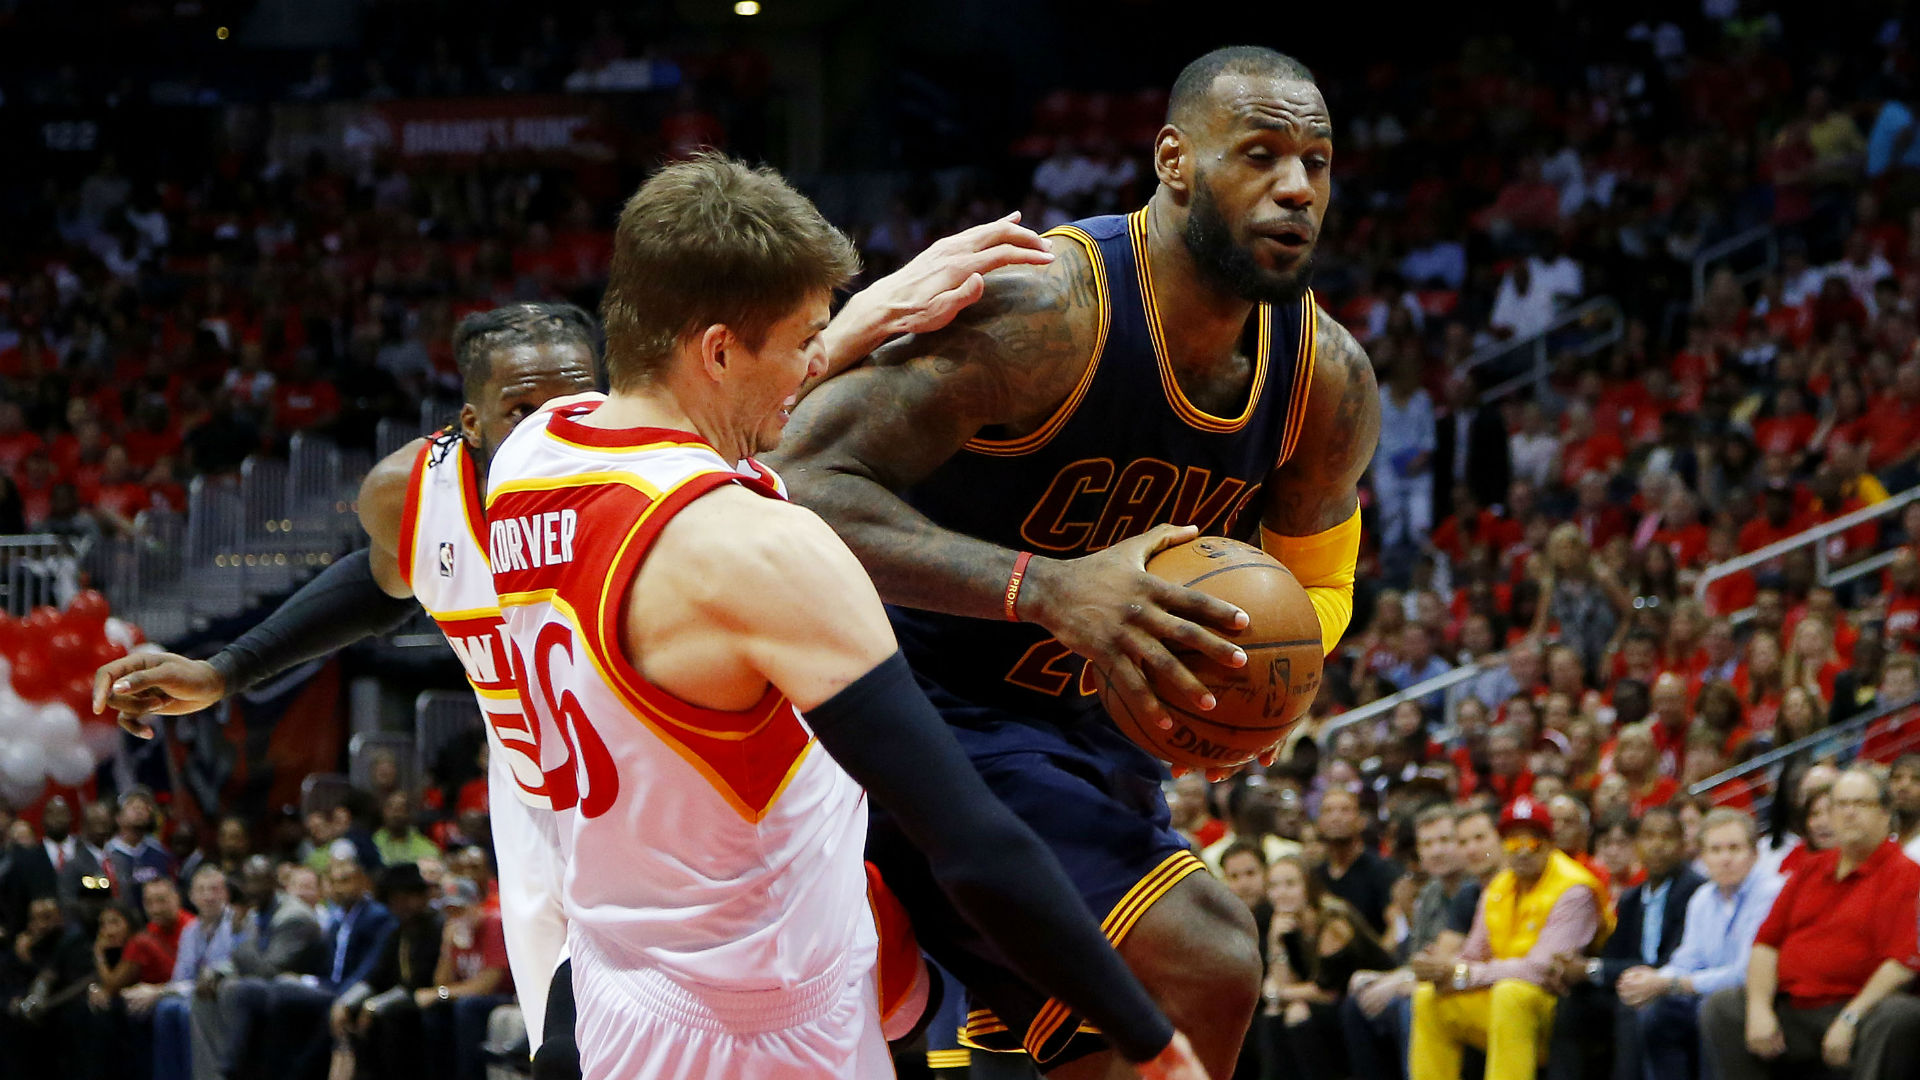 Cavaliers vs. Hawks Game 3: Time, TV info and analysis